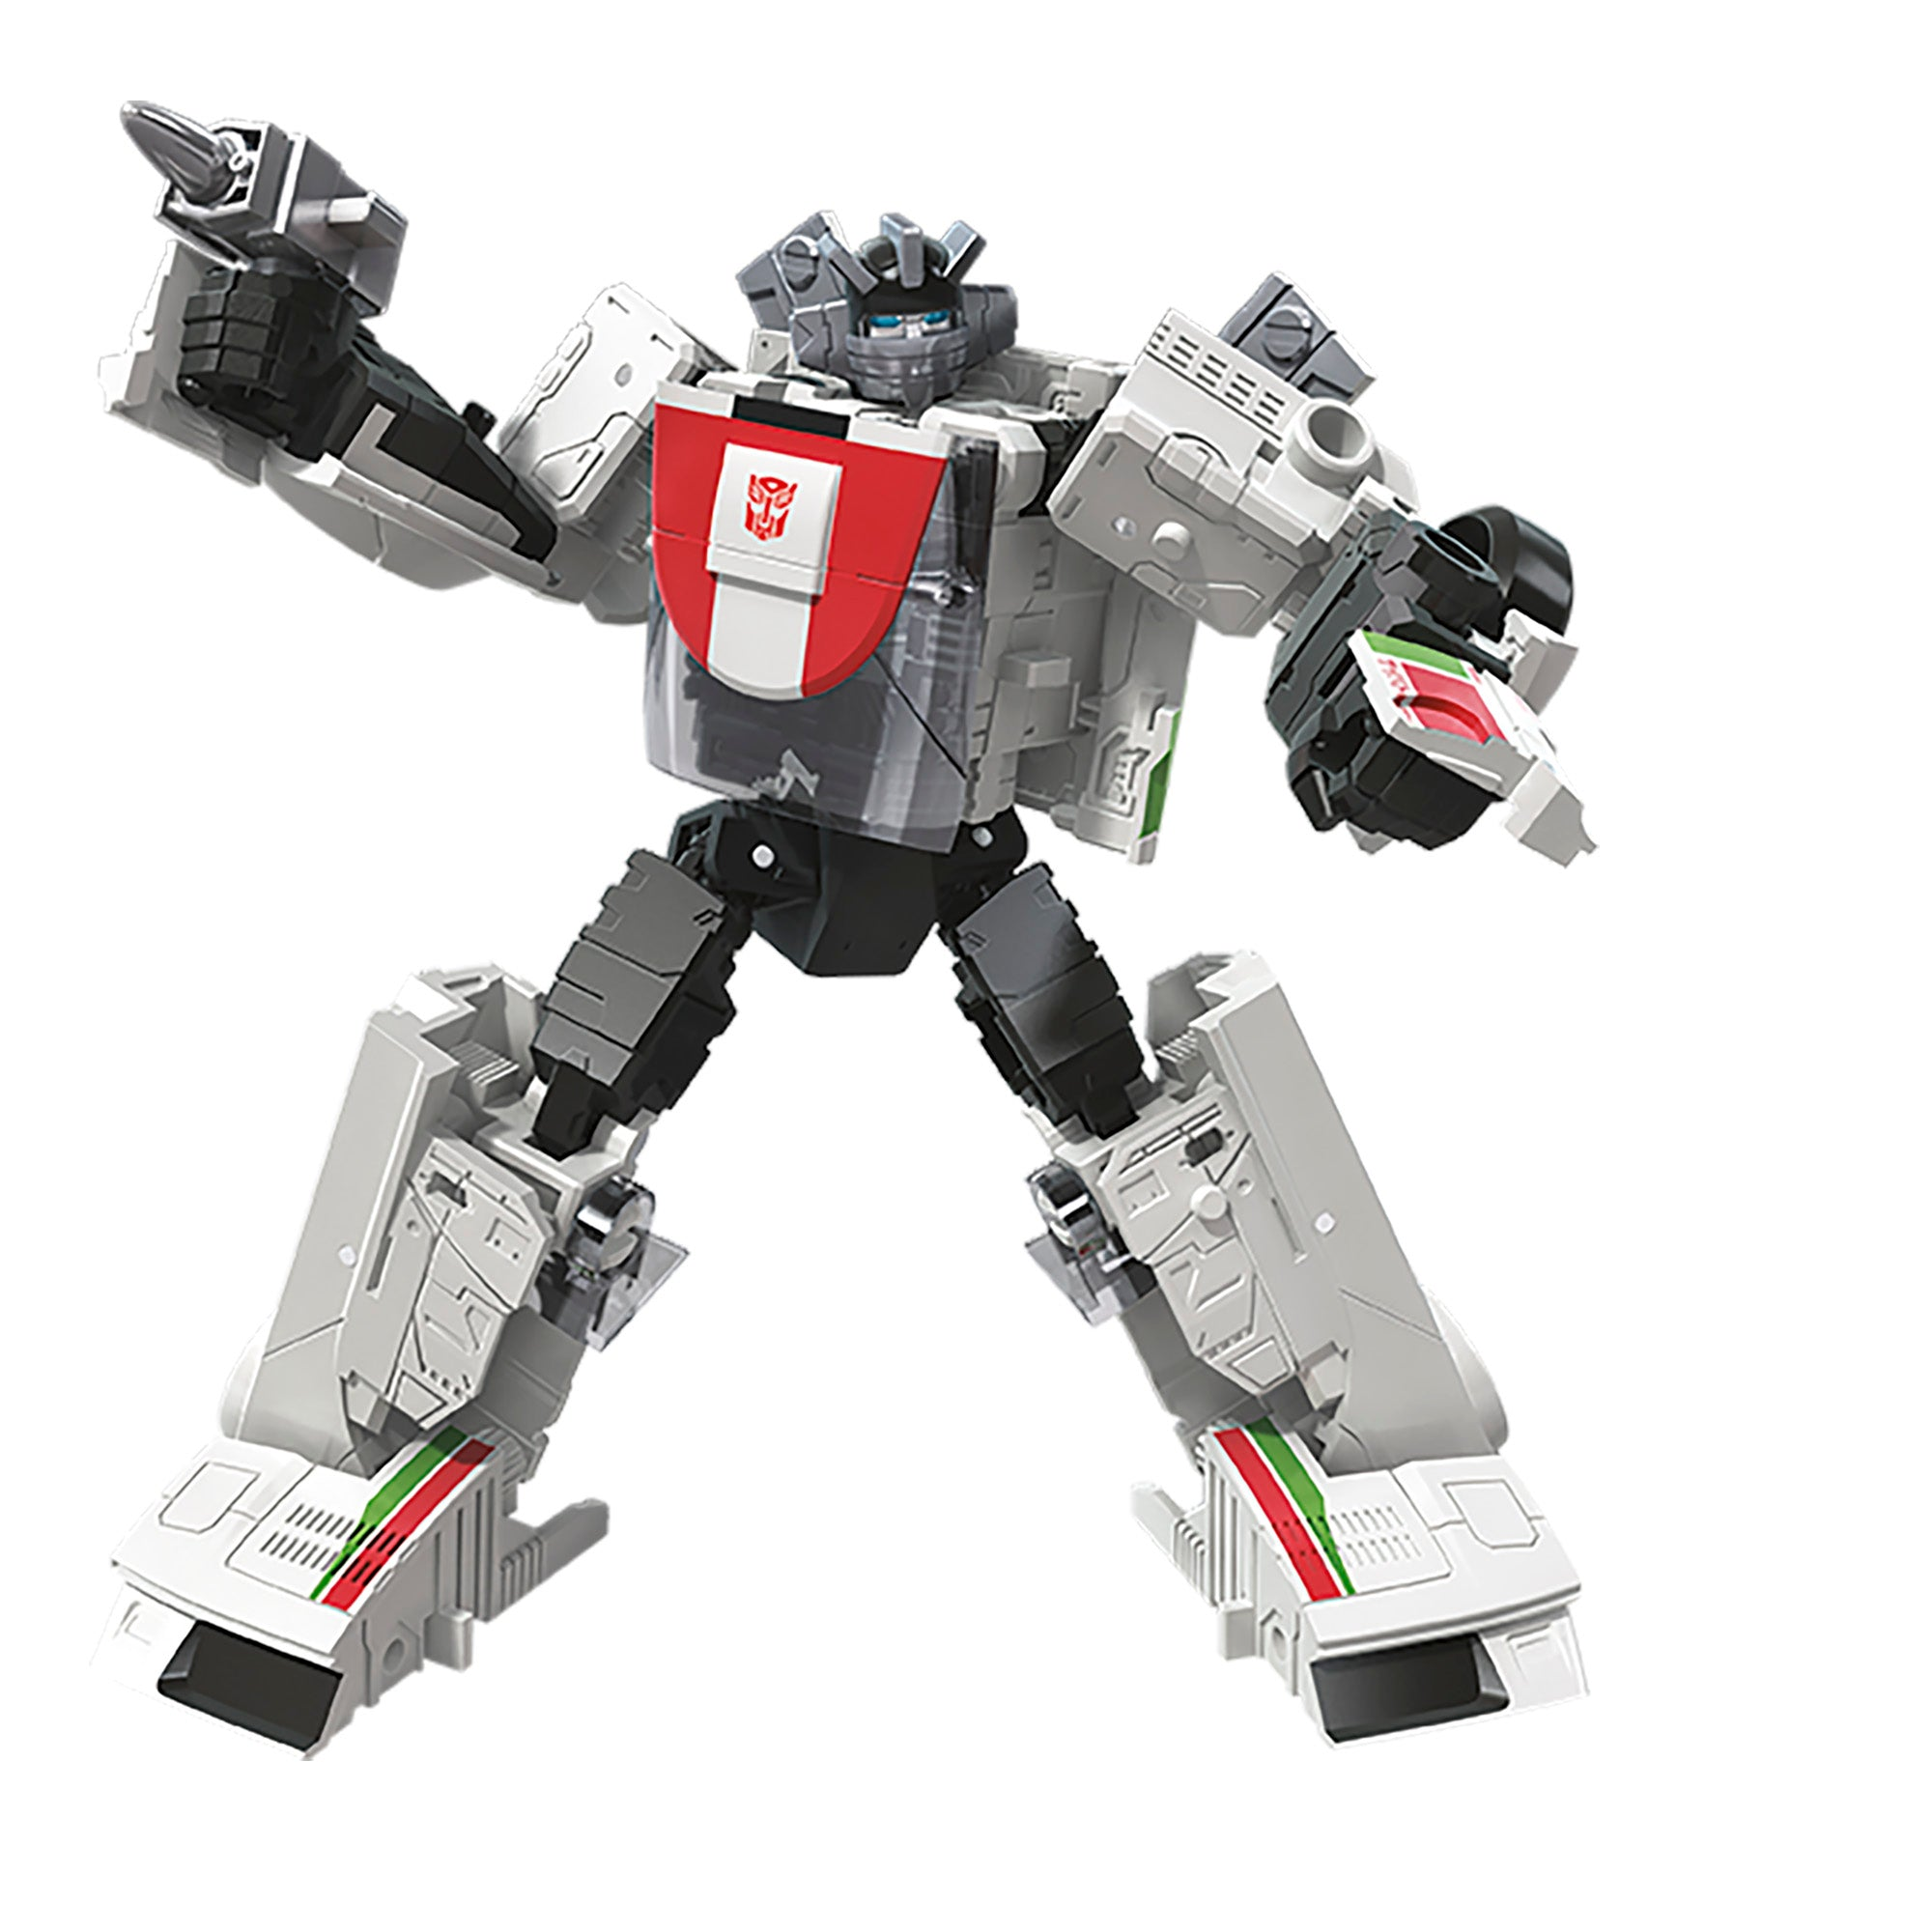 Transformers Wheeljack Earthrise WAR for Cybertron Trilogia Deluxe Hasbro NUOVO